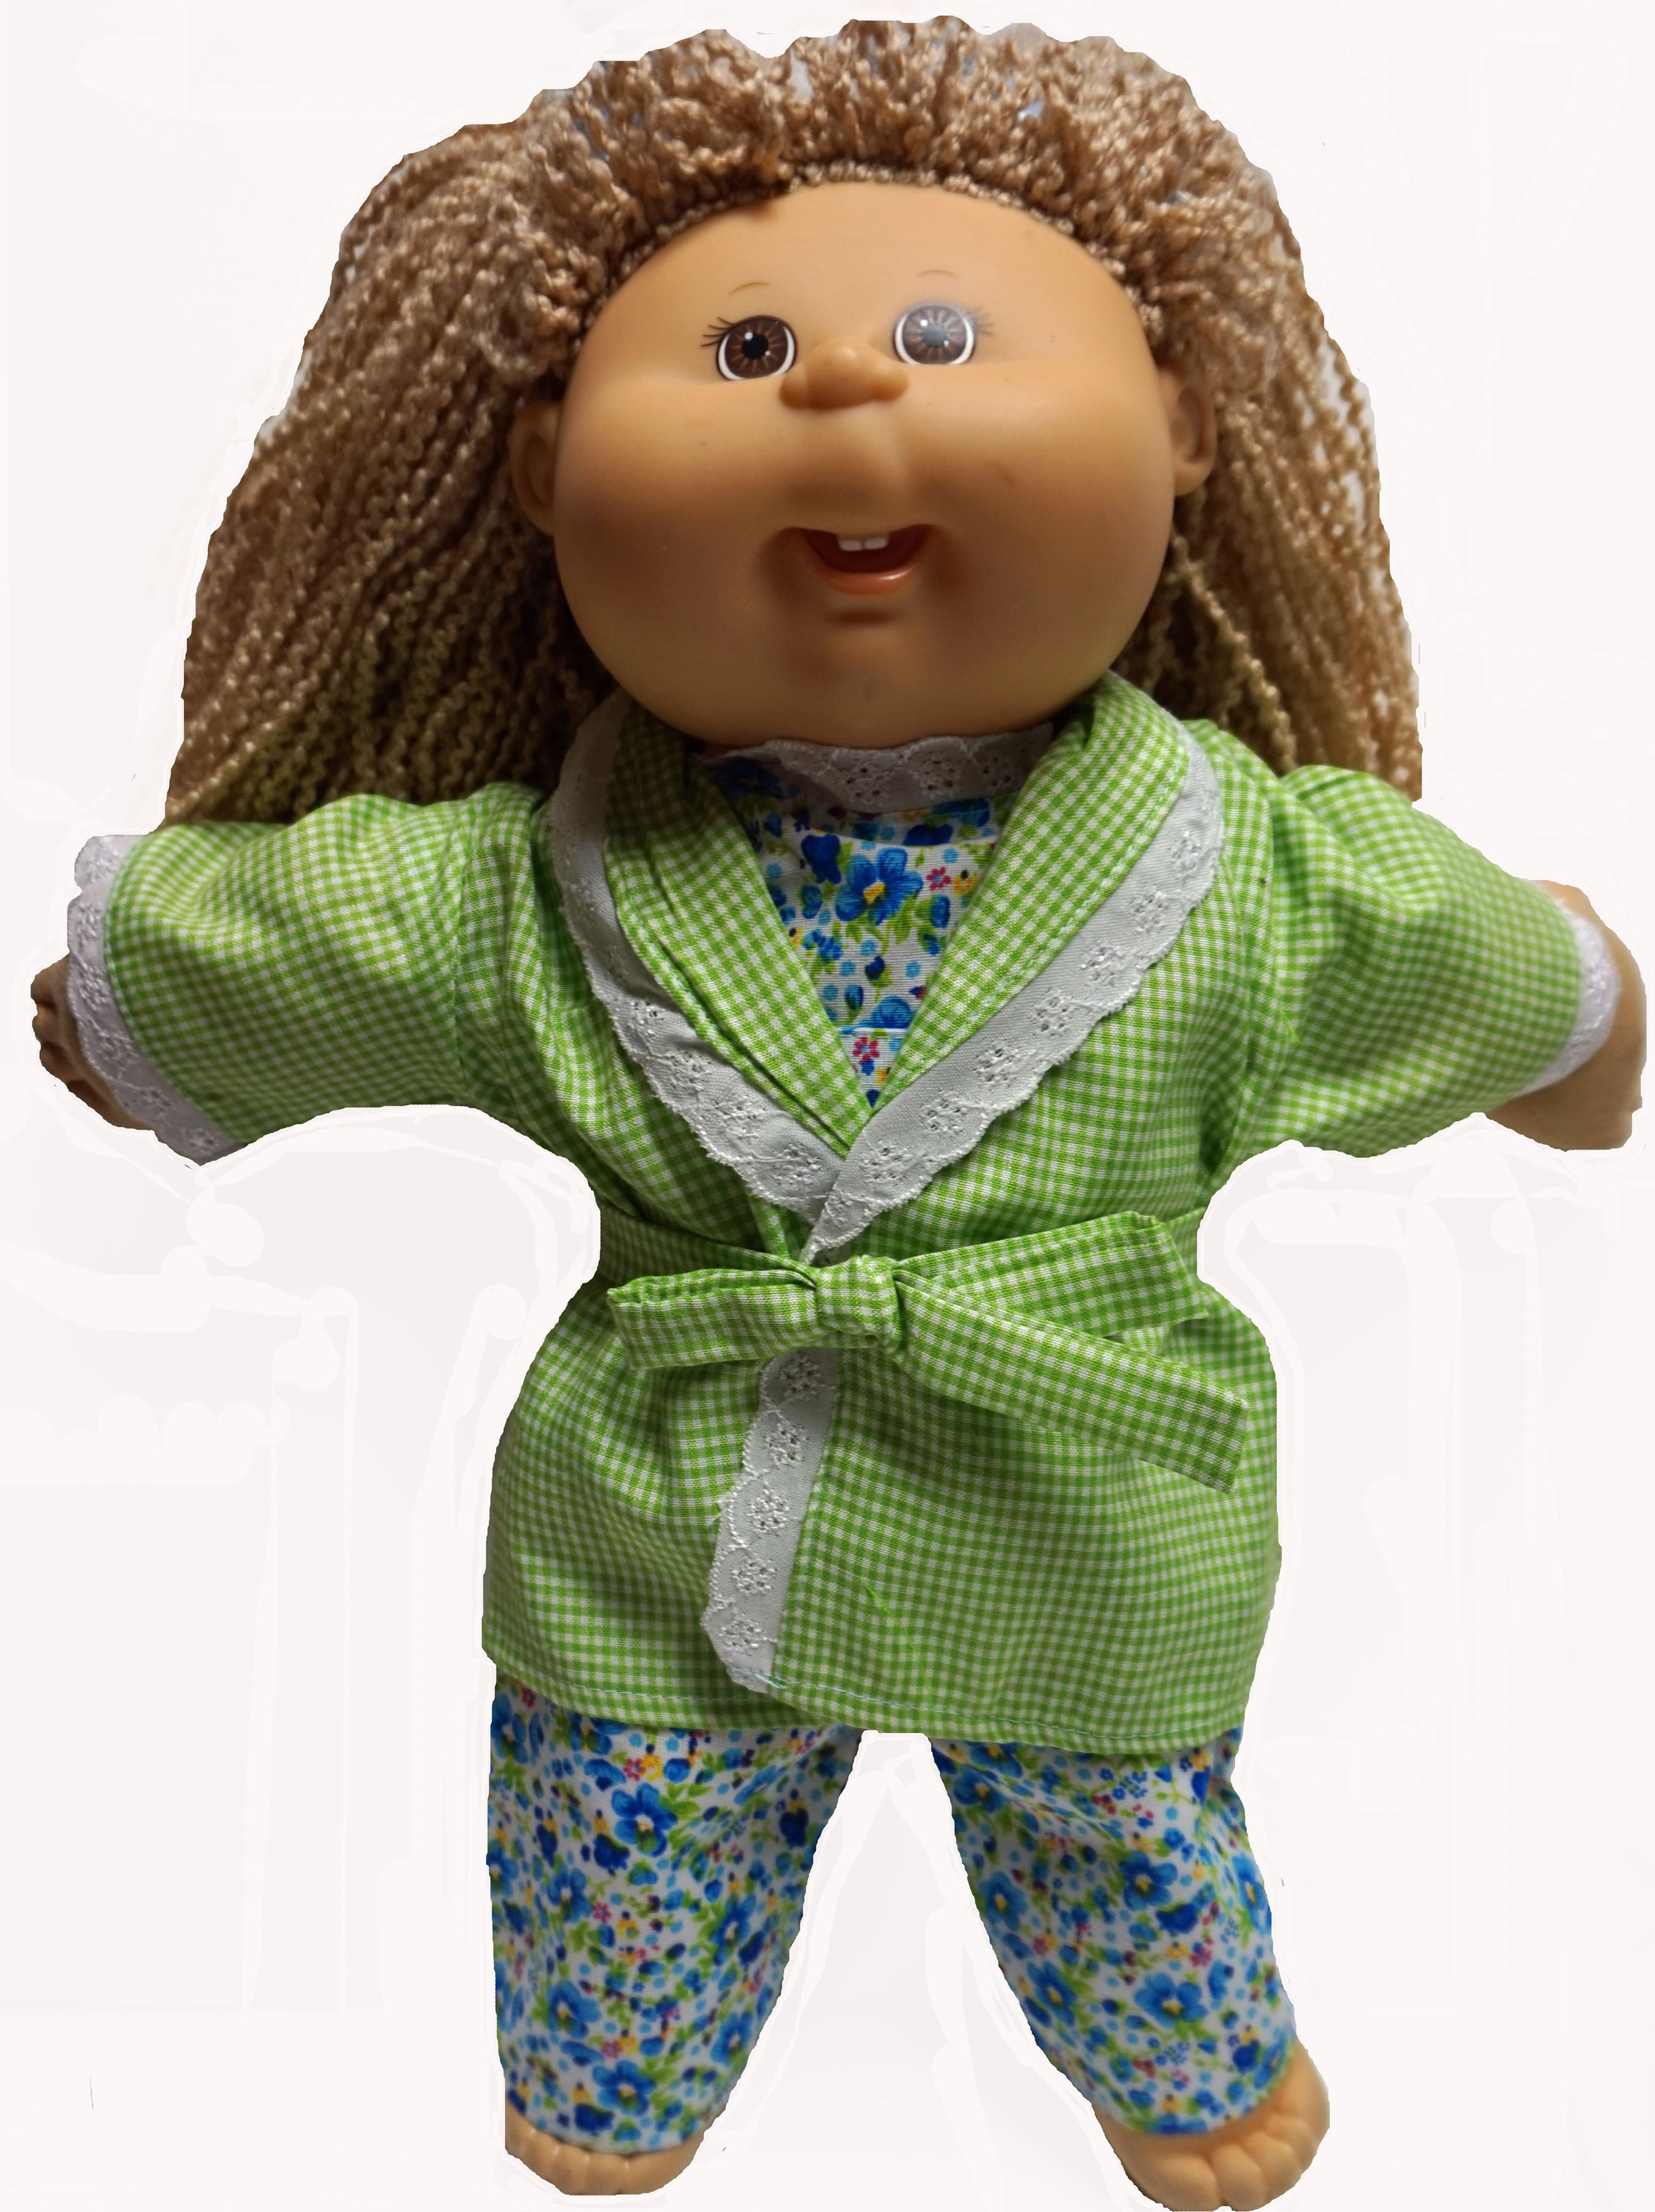 Green Check Bathrobe With Flower Pajamas Fits Cabbage Patch Kid Dolls by Doll Clothes Superstore